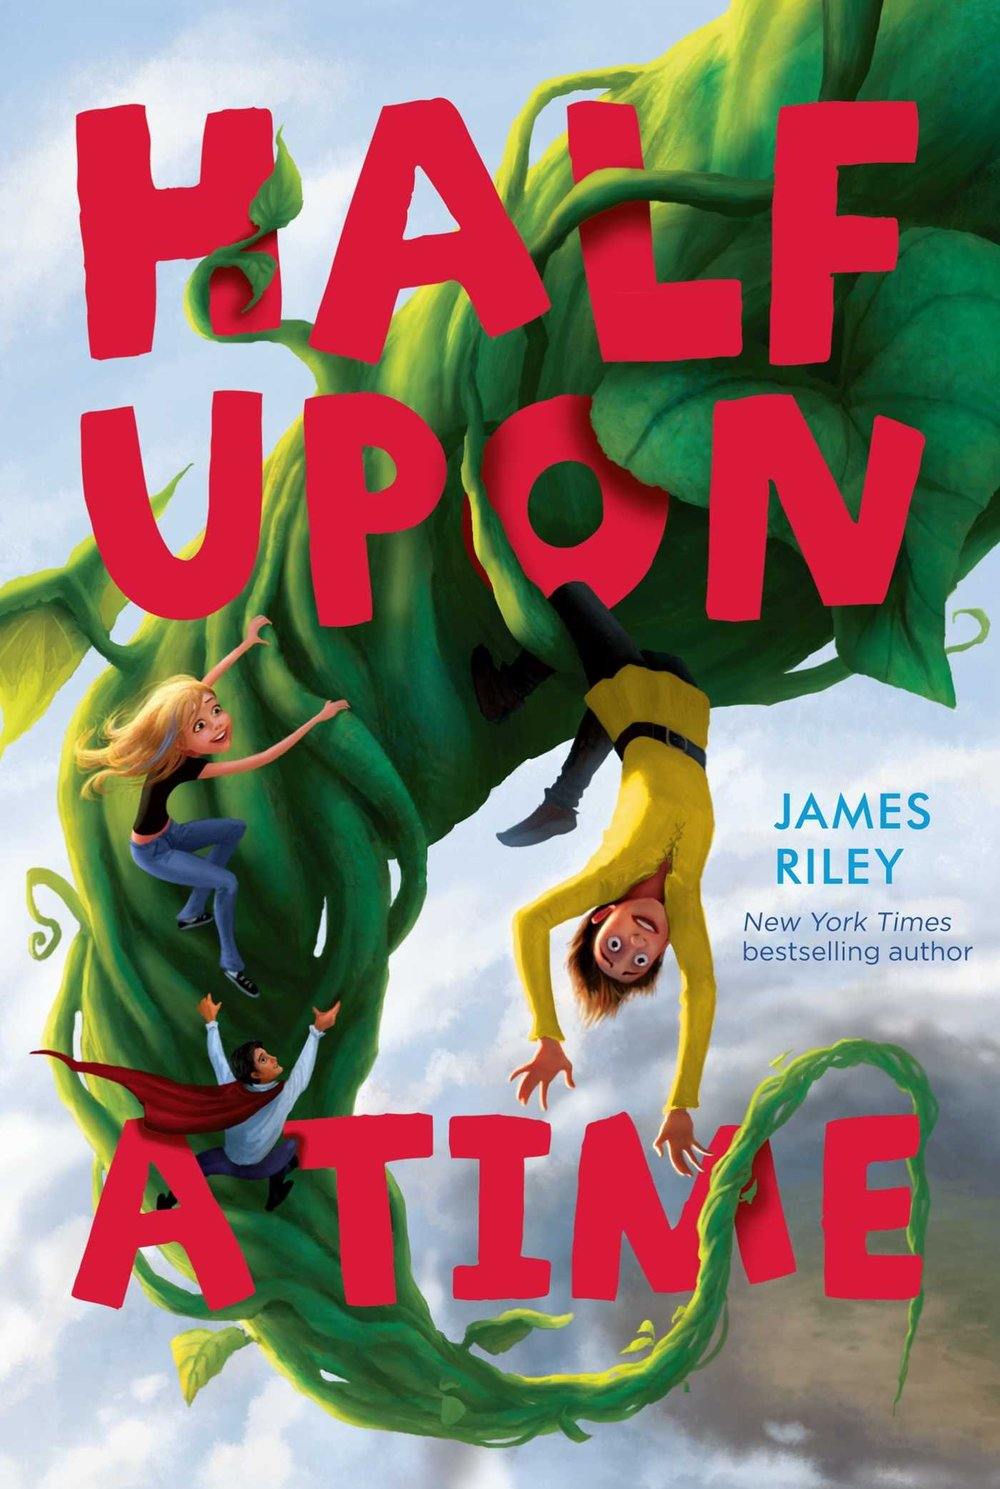 HALF UPON A TIME - Jack comes from a family of adventurers, but he wants nothing to do with stealing from giants or fighting dragons. All he wants is to live a normal, fairy tale life, in a realm where every fairy tale you've ever heard of is true.All of that changes when a girl from the real world falls from the sky right in front of him one day, and reveals that she just escaped a kidnapping by seven dwarfs. Her grandmother, however, isn't so lucky. Jack takes May on an adventure to find her grandmother … and the truth about how to be a fairy tale hero.